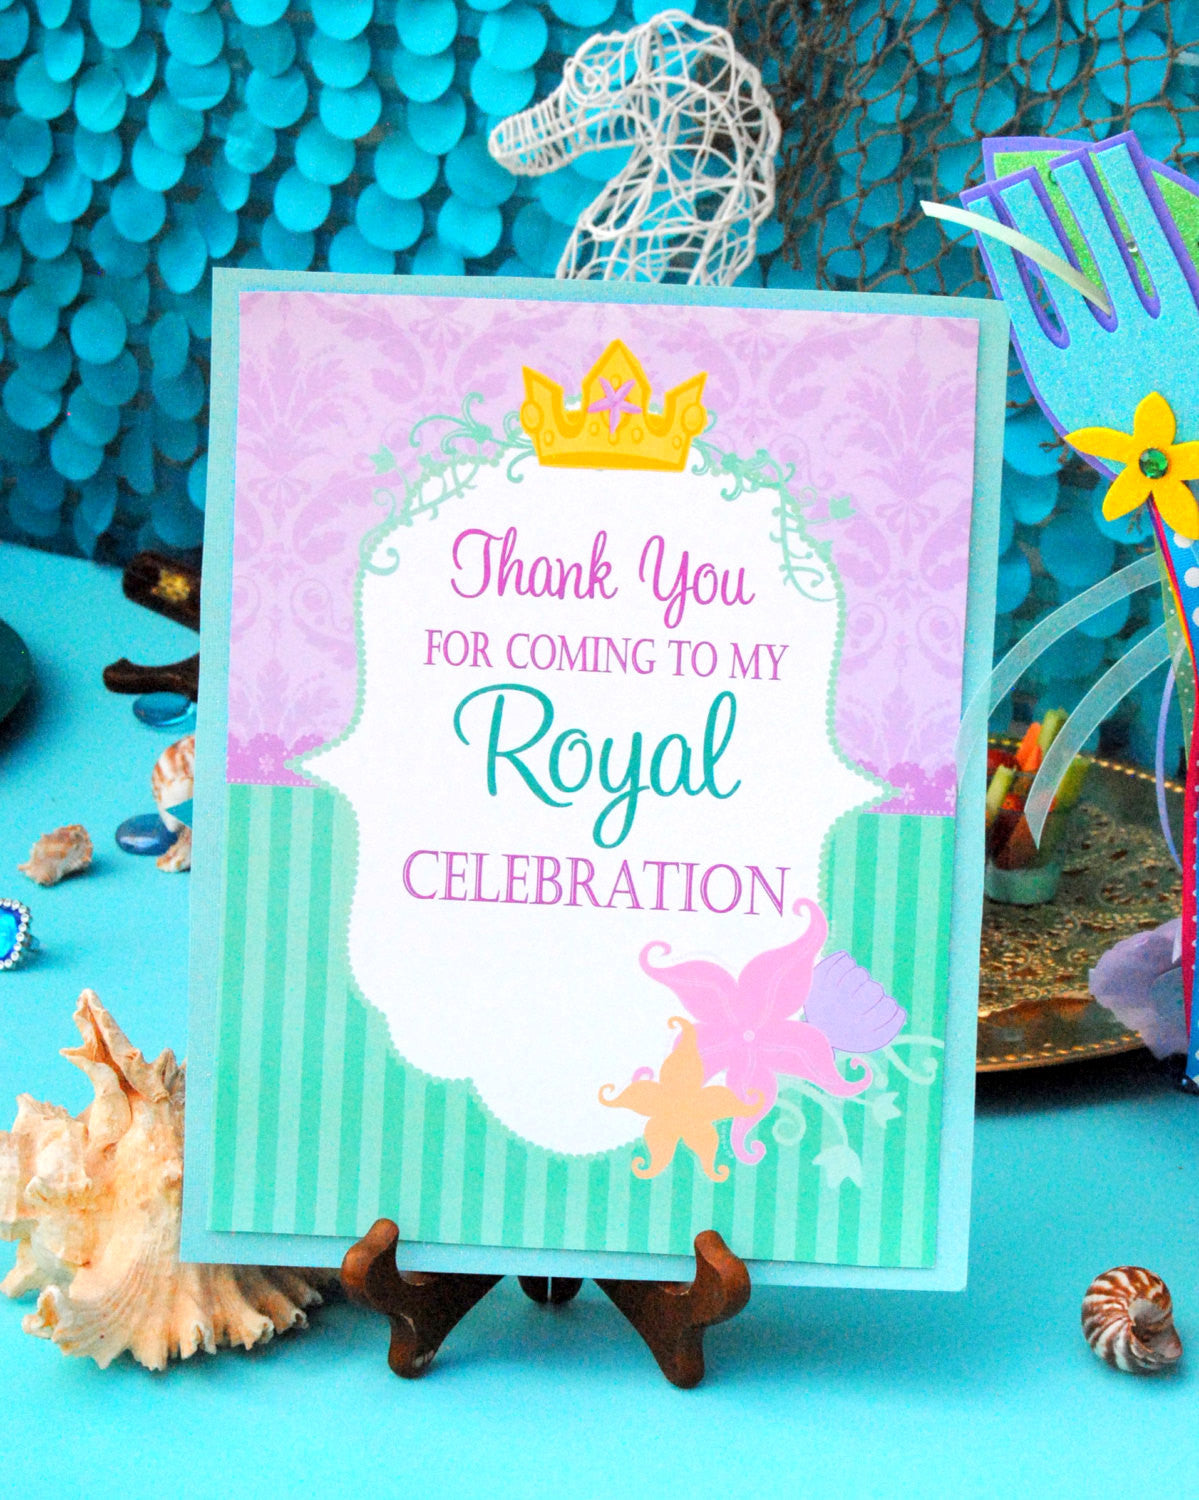 Mermaid Birthday - Mermaid THANK YOU SIGN - Princess Party - Mermaid Party- Mermaid Printables - INSTANT Download